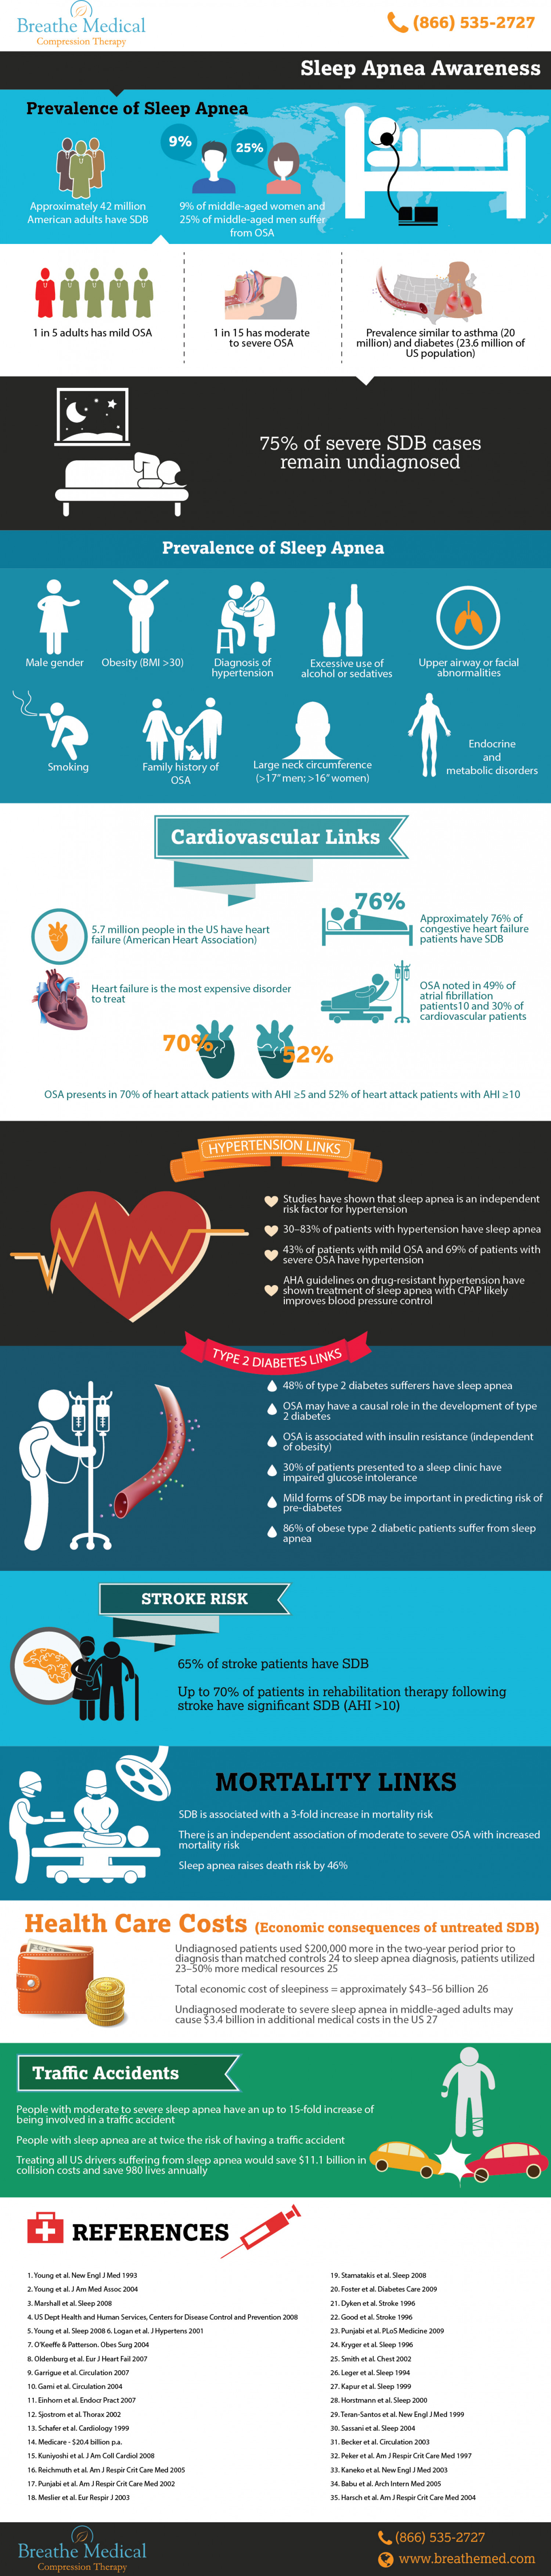 Sleep Apnea Awarenes Infographic